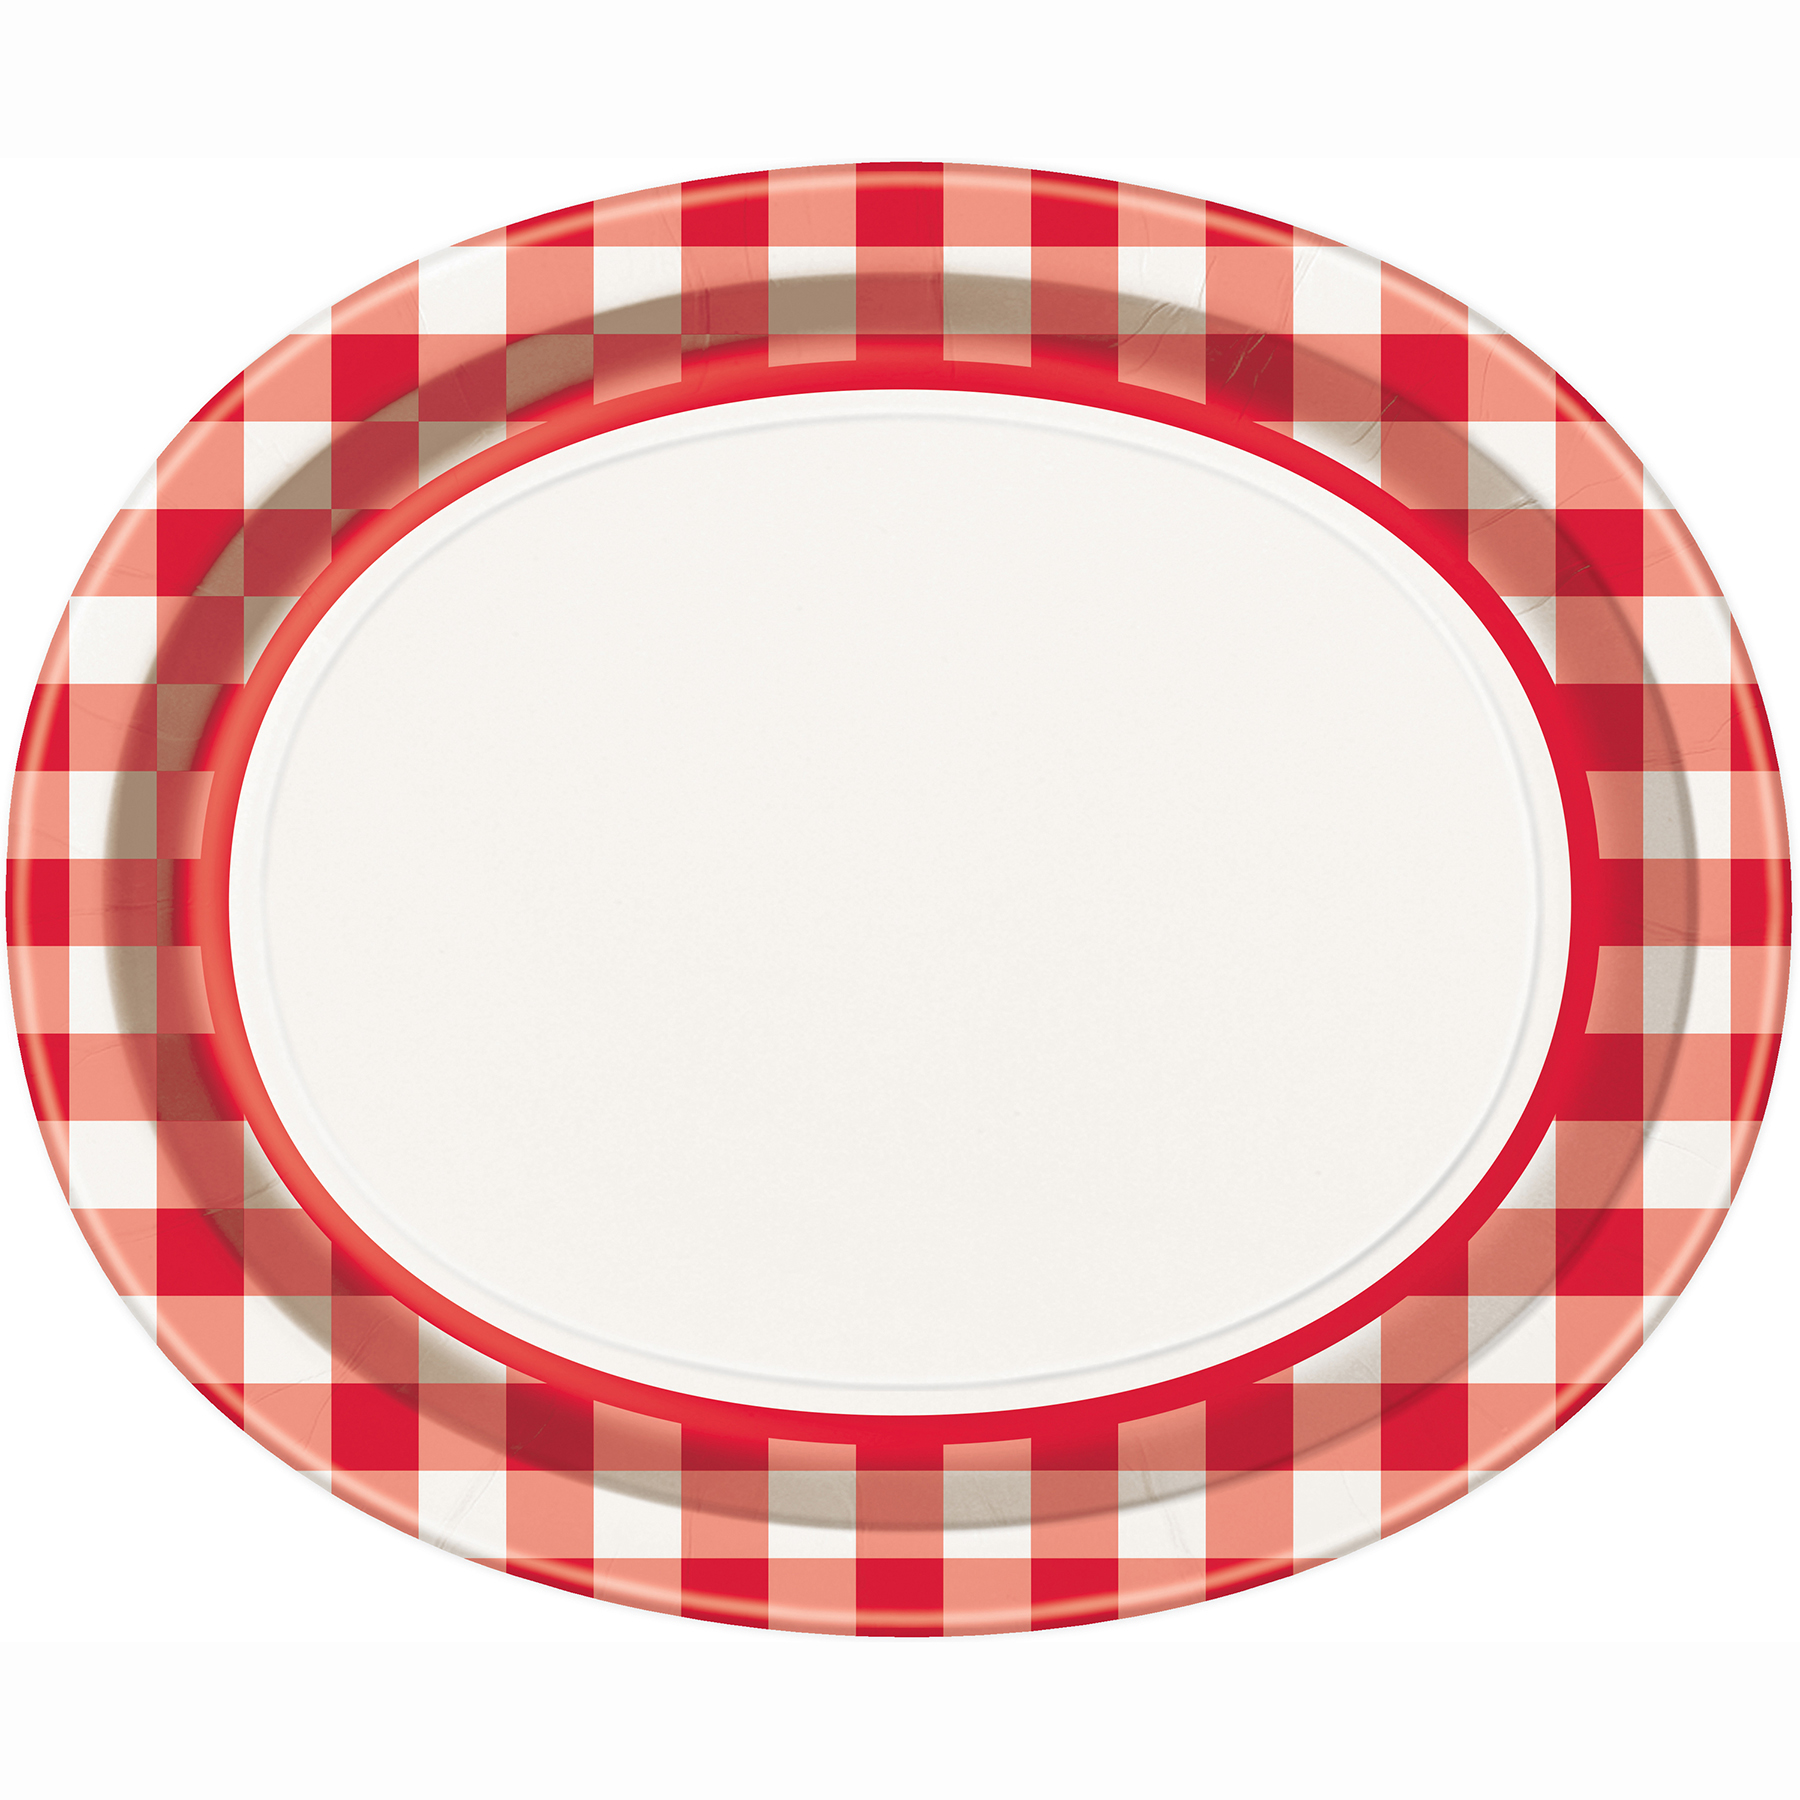 Oval Red u0026 White Gingham Dinner Plates ...  sc 1 st  Michaels Stores : checkered dinner plates - pezcame.com